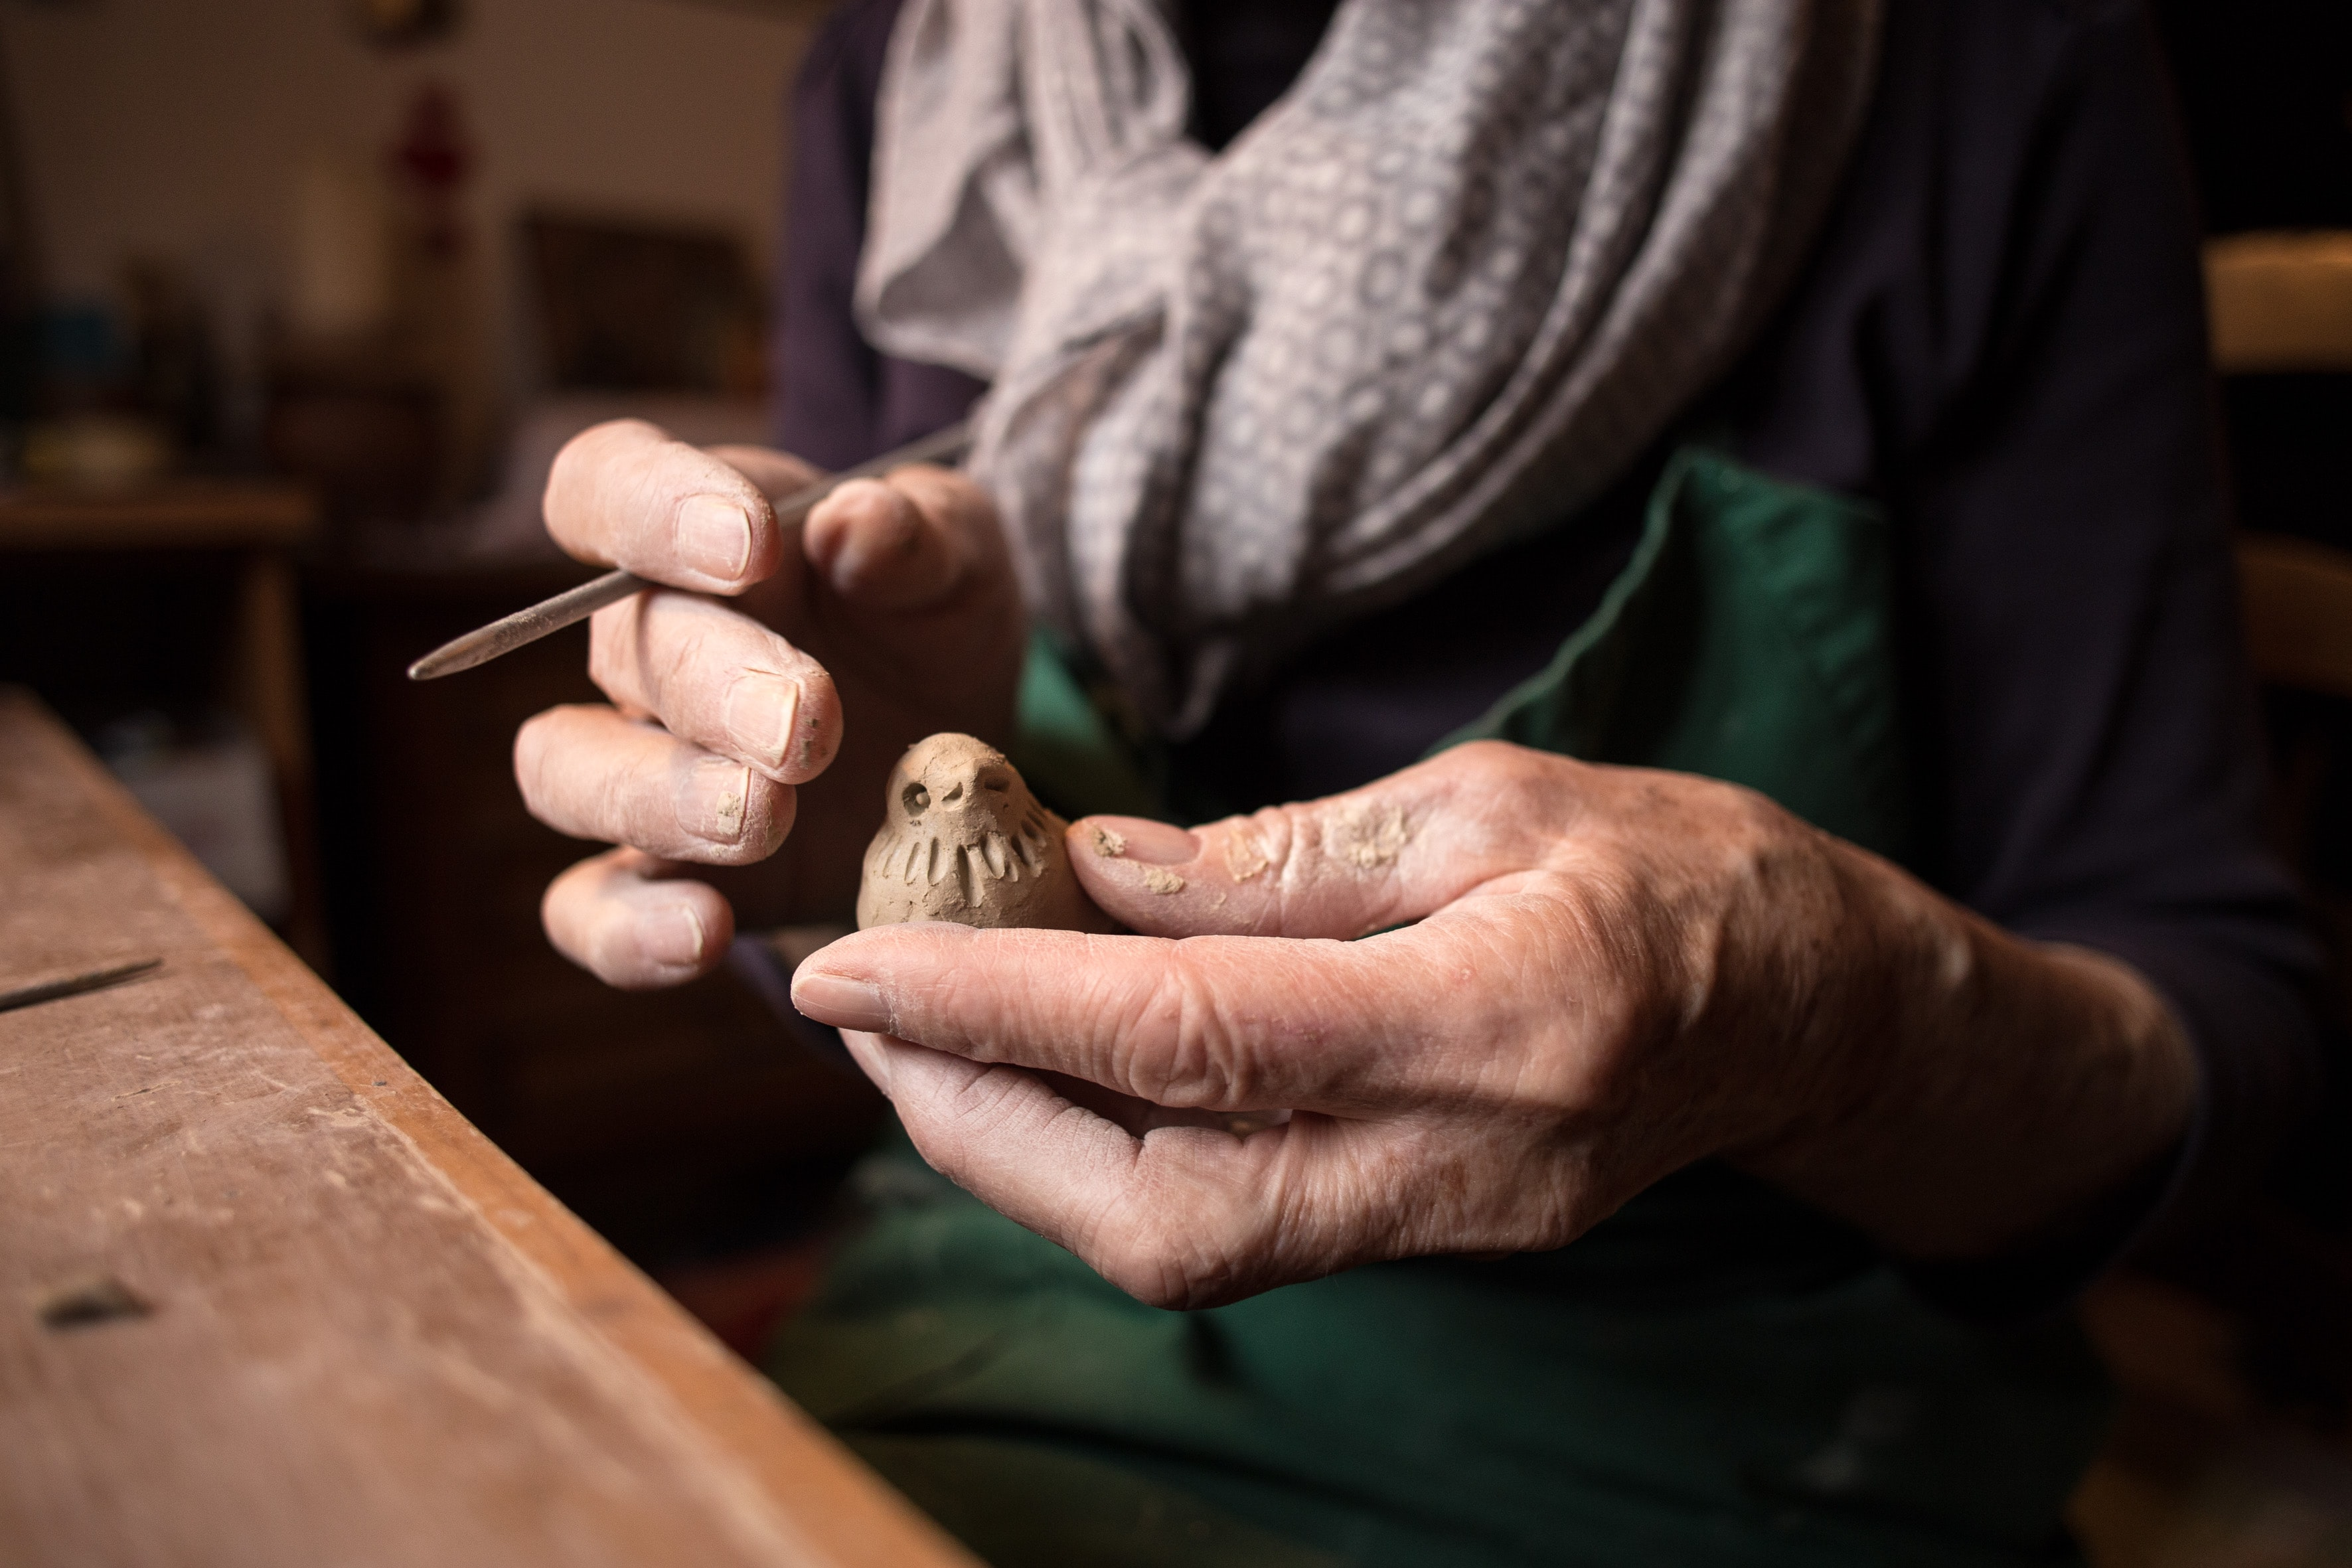 An elderly person carving a small bird out of wood